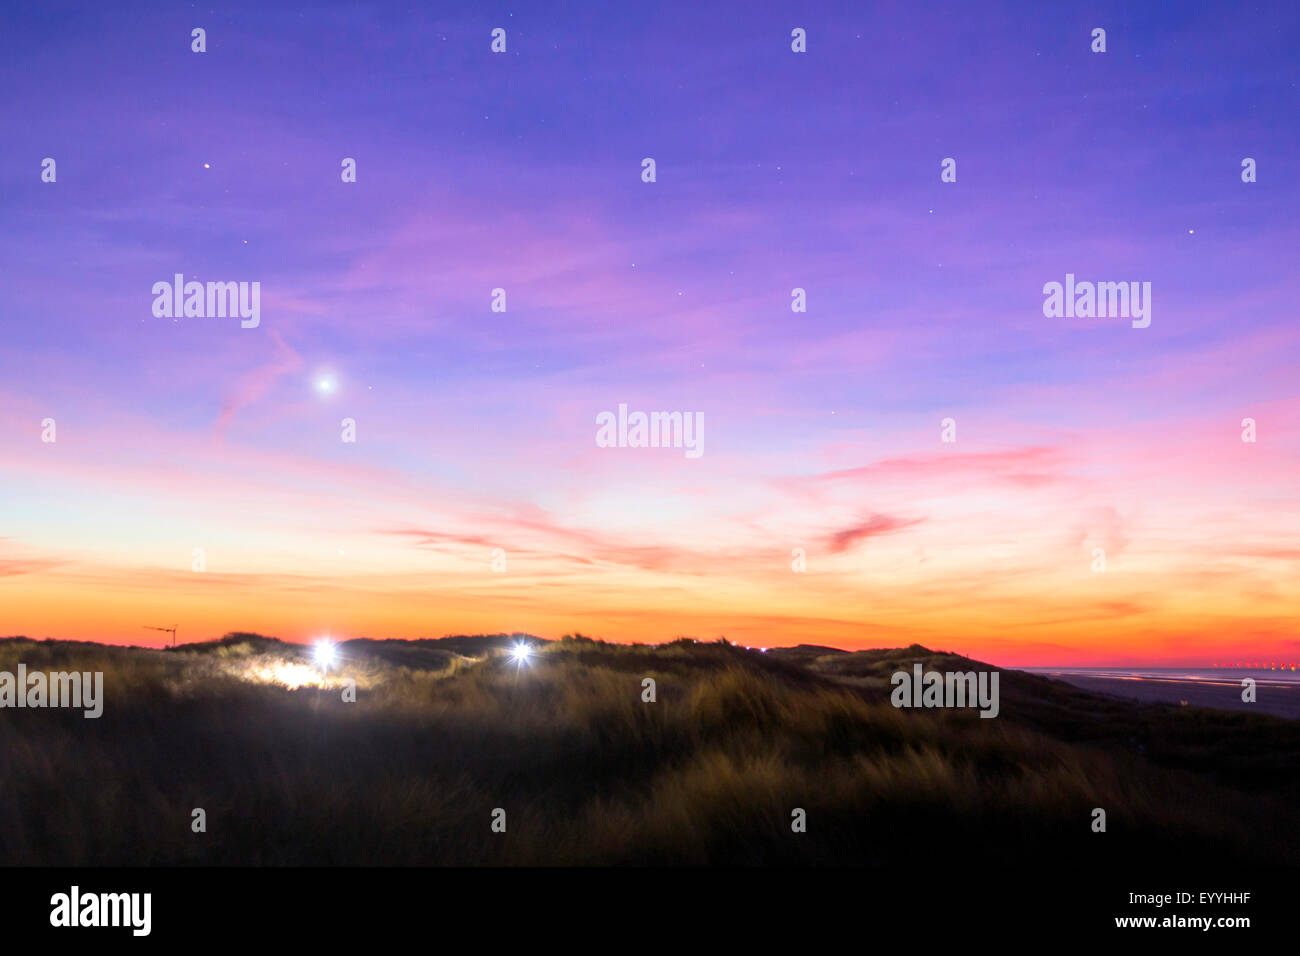 planet Venus over island Juist, Germany, Lower Saxony, Juist - Stock Image